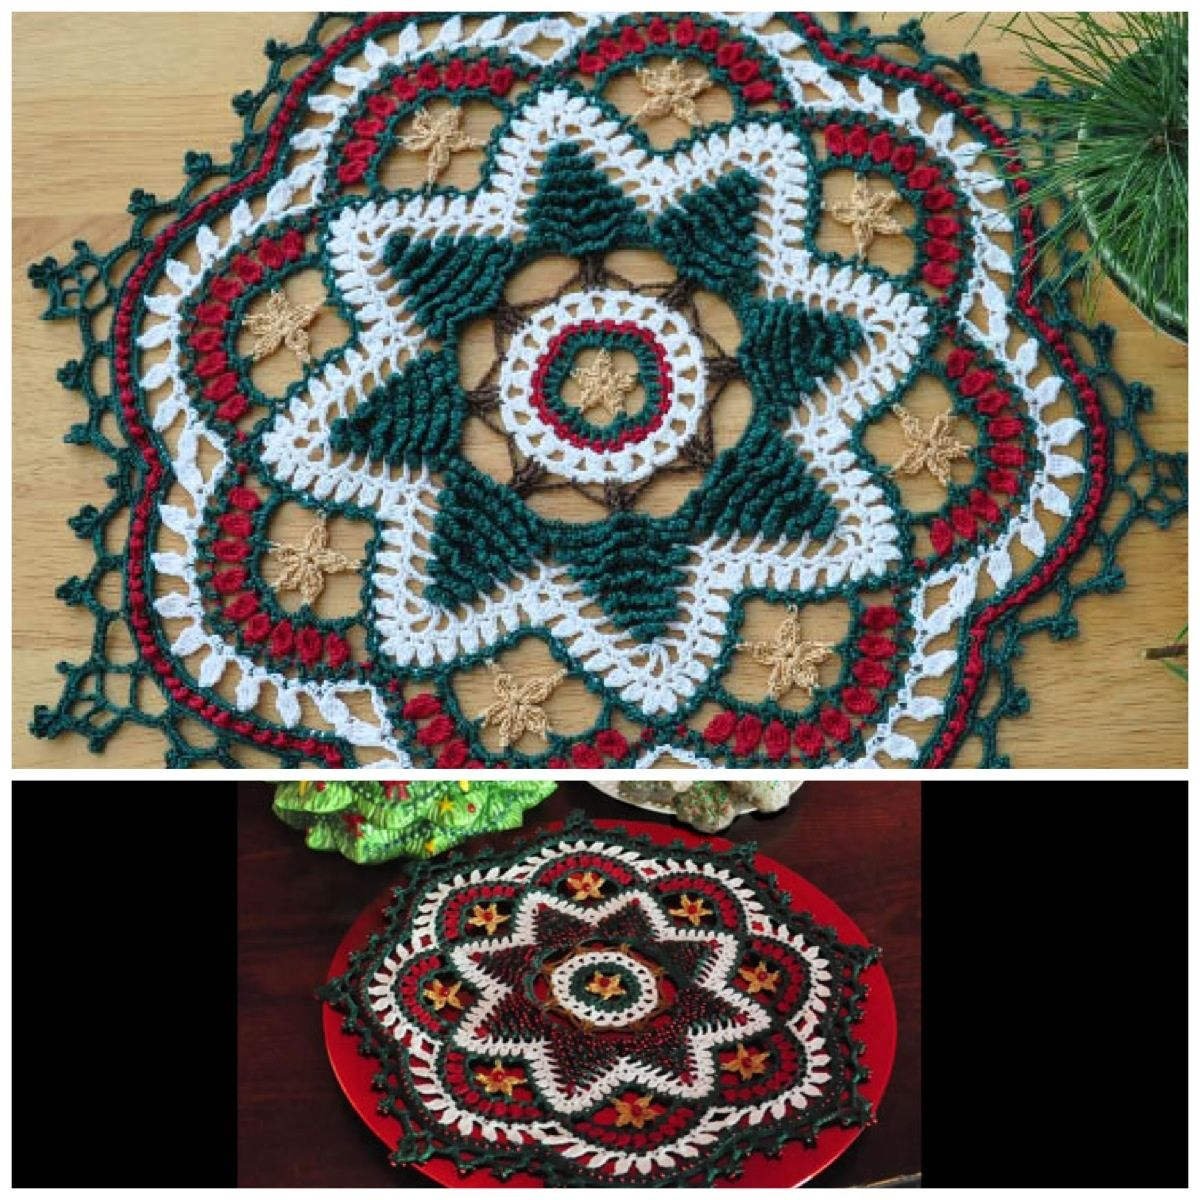 Oh Christmas Tree Doily By Kathryn White Can Be Stitched With Or Without Beads Christmas Holiday Doily Thread Crochet Christmas Crochet Patterns Crochet Doilies Doily Patterns